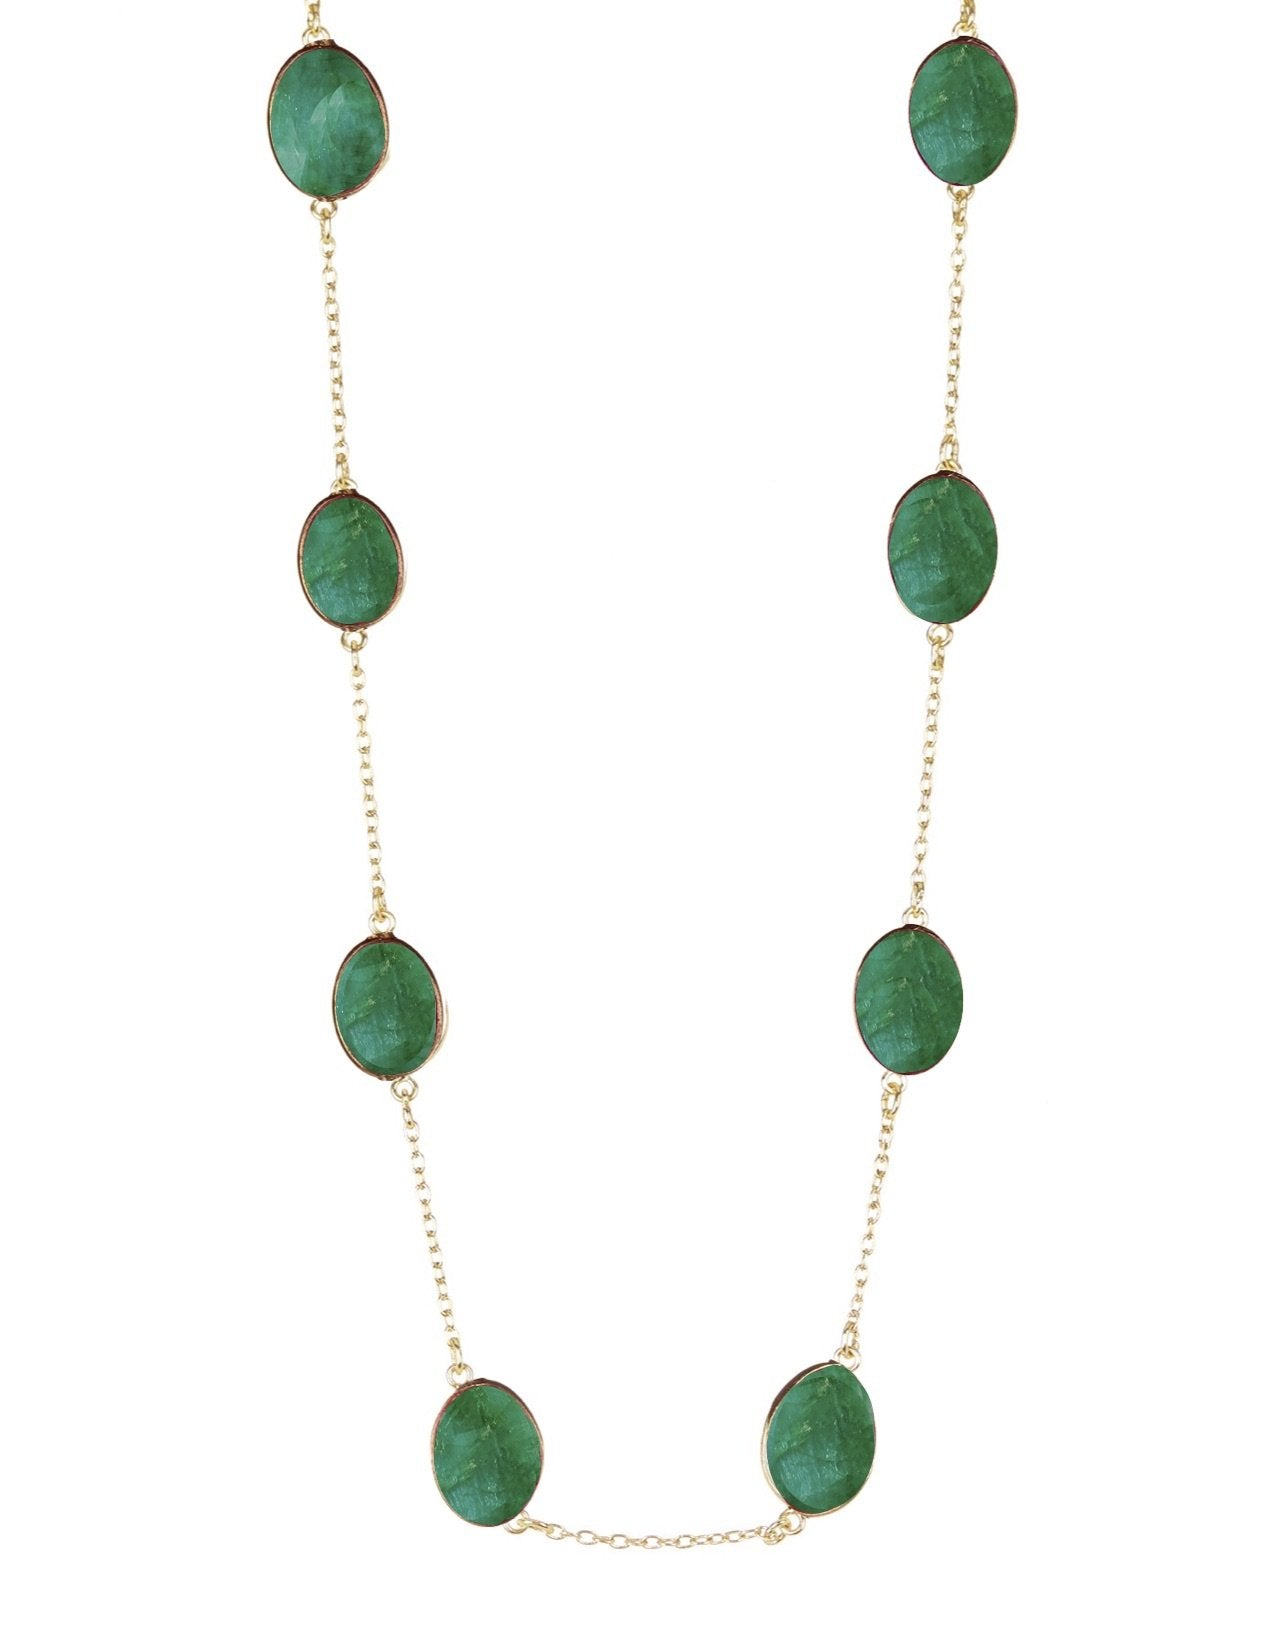 18K Gold Emerald Station Necklace